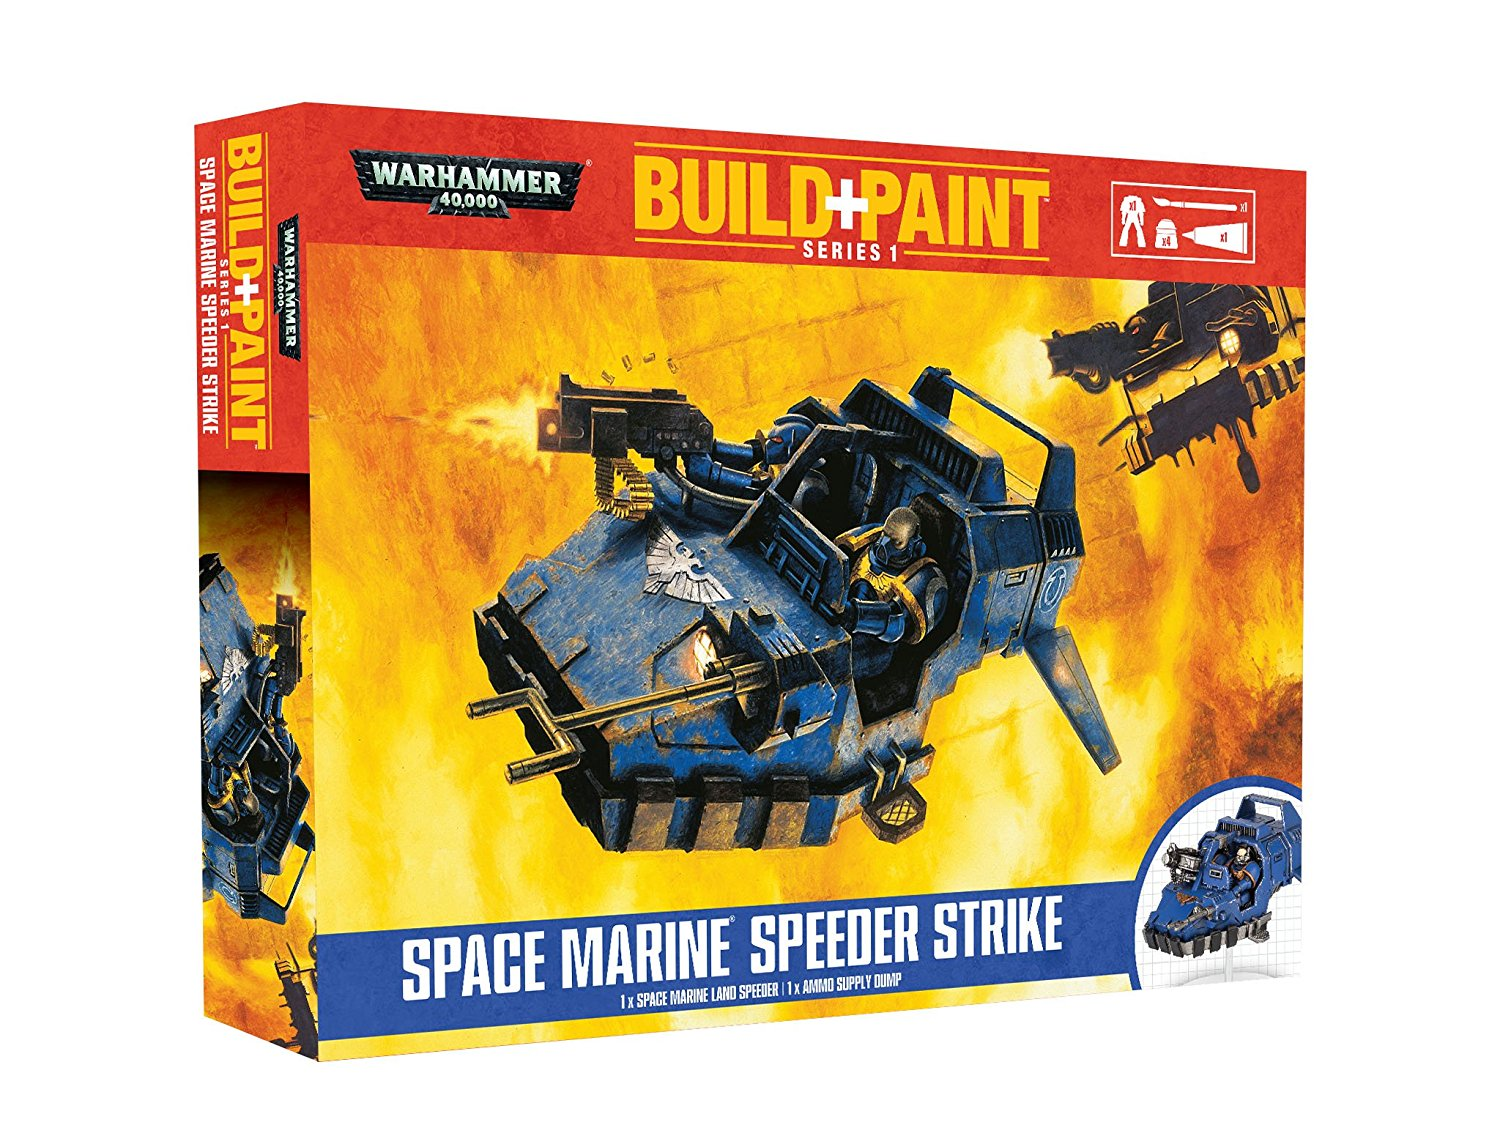 Warhammer 40K Build+Paint Model Set Series 1 Space Marine Speeder Strike Kits By Revell by